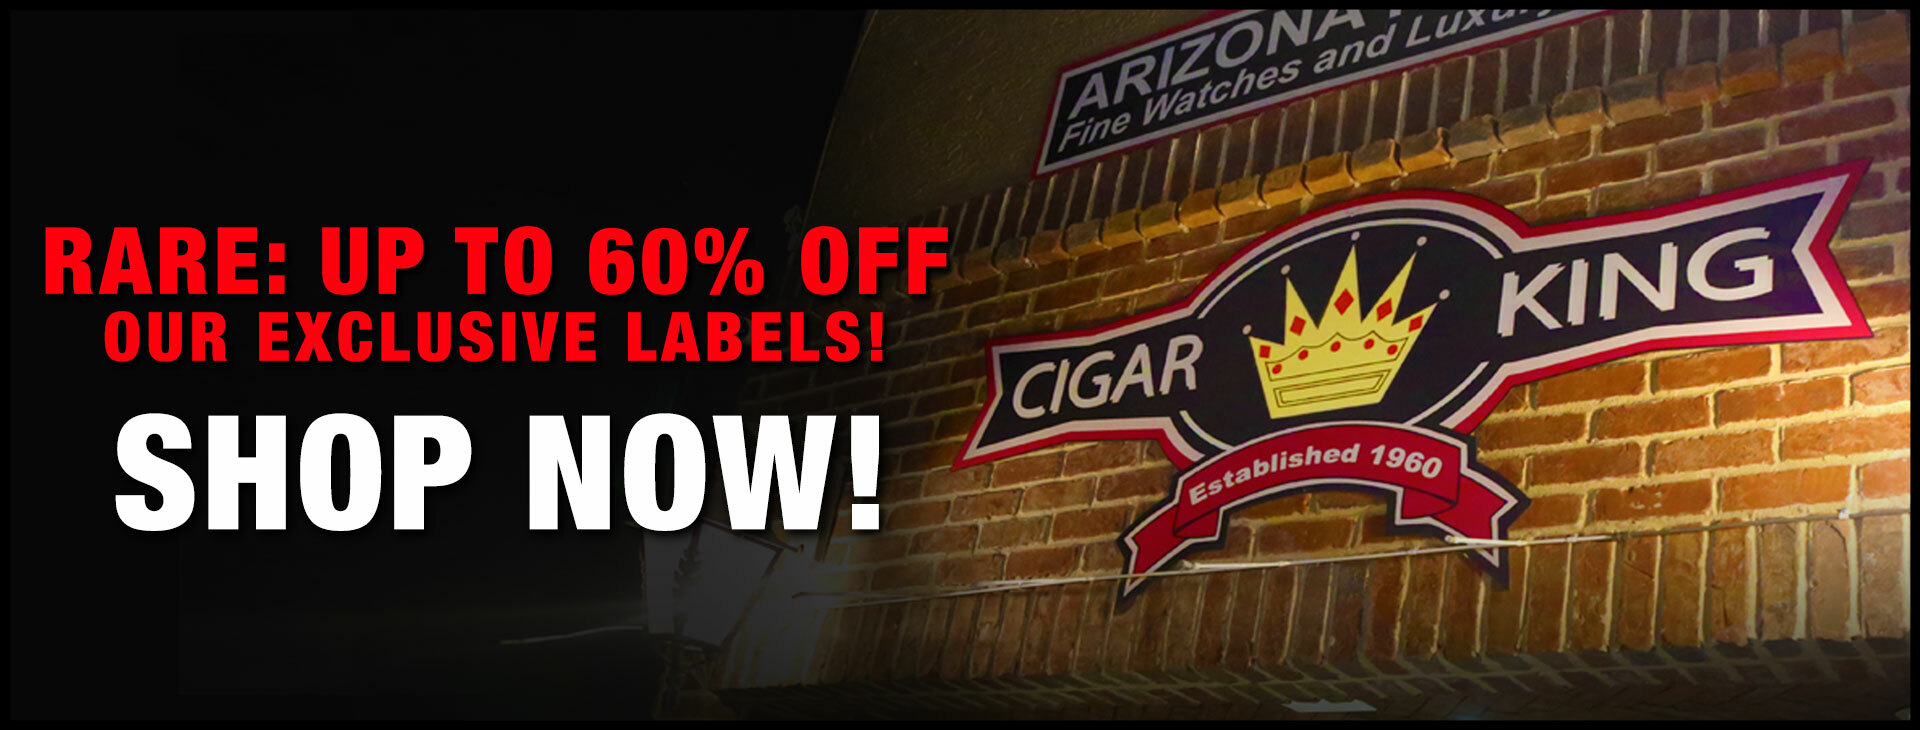 UP TO 60% OFF OUR WORLD-FAMOUS EXCLUSIVE CIGARS